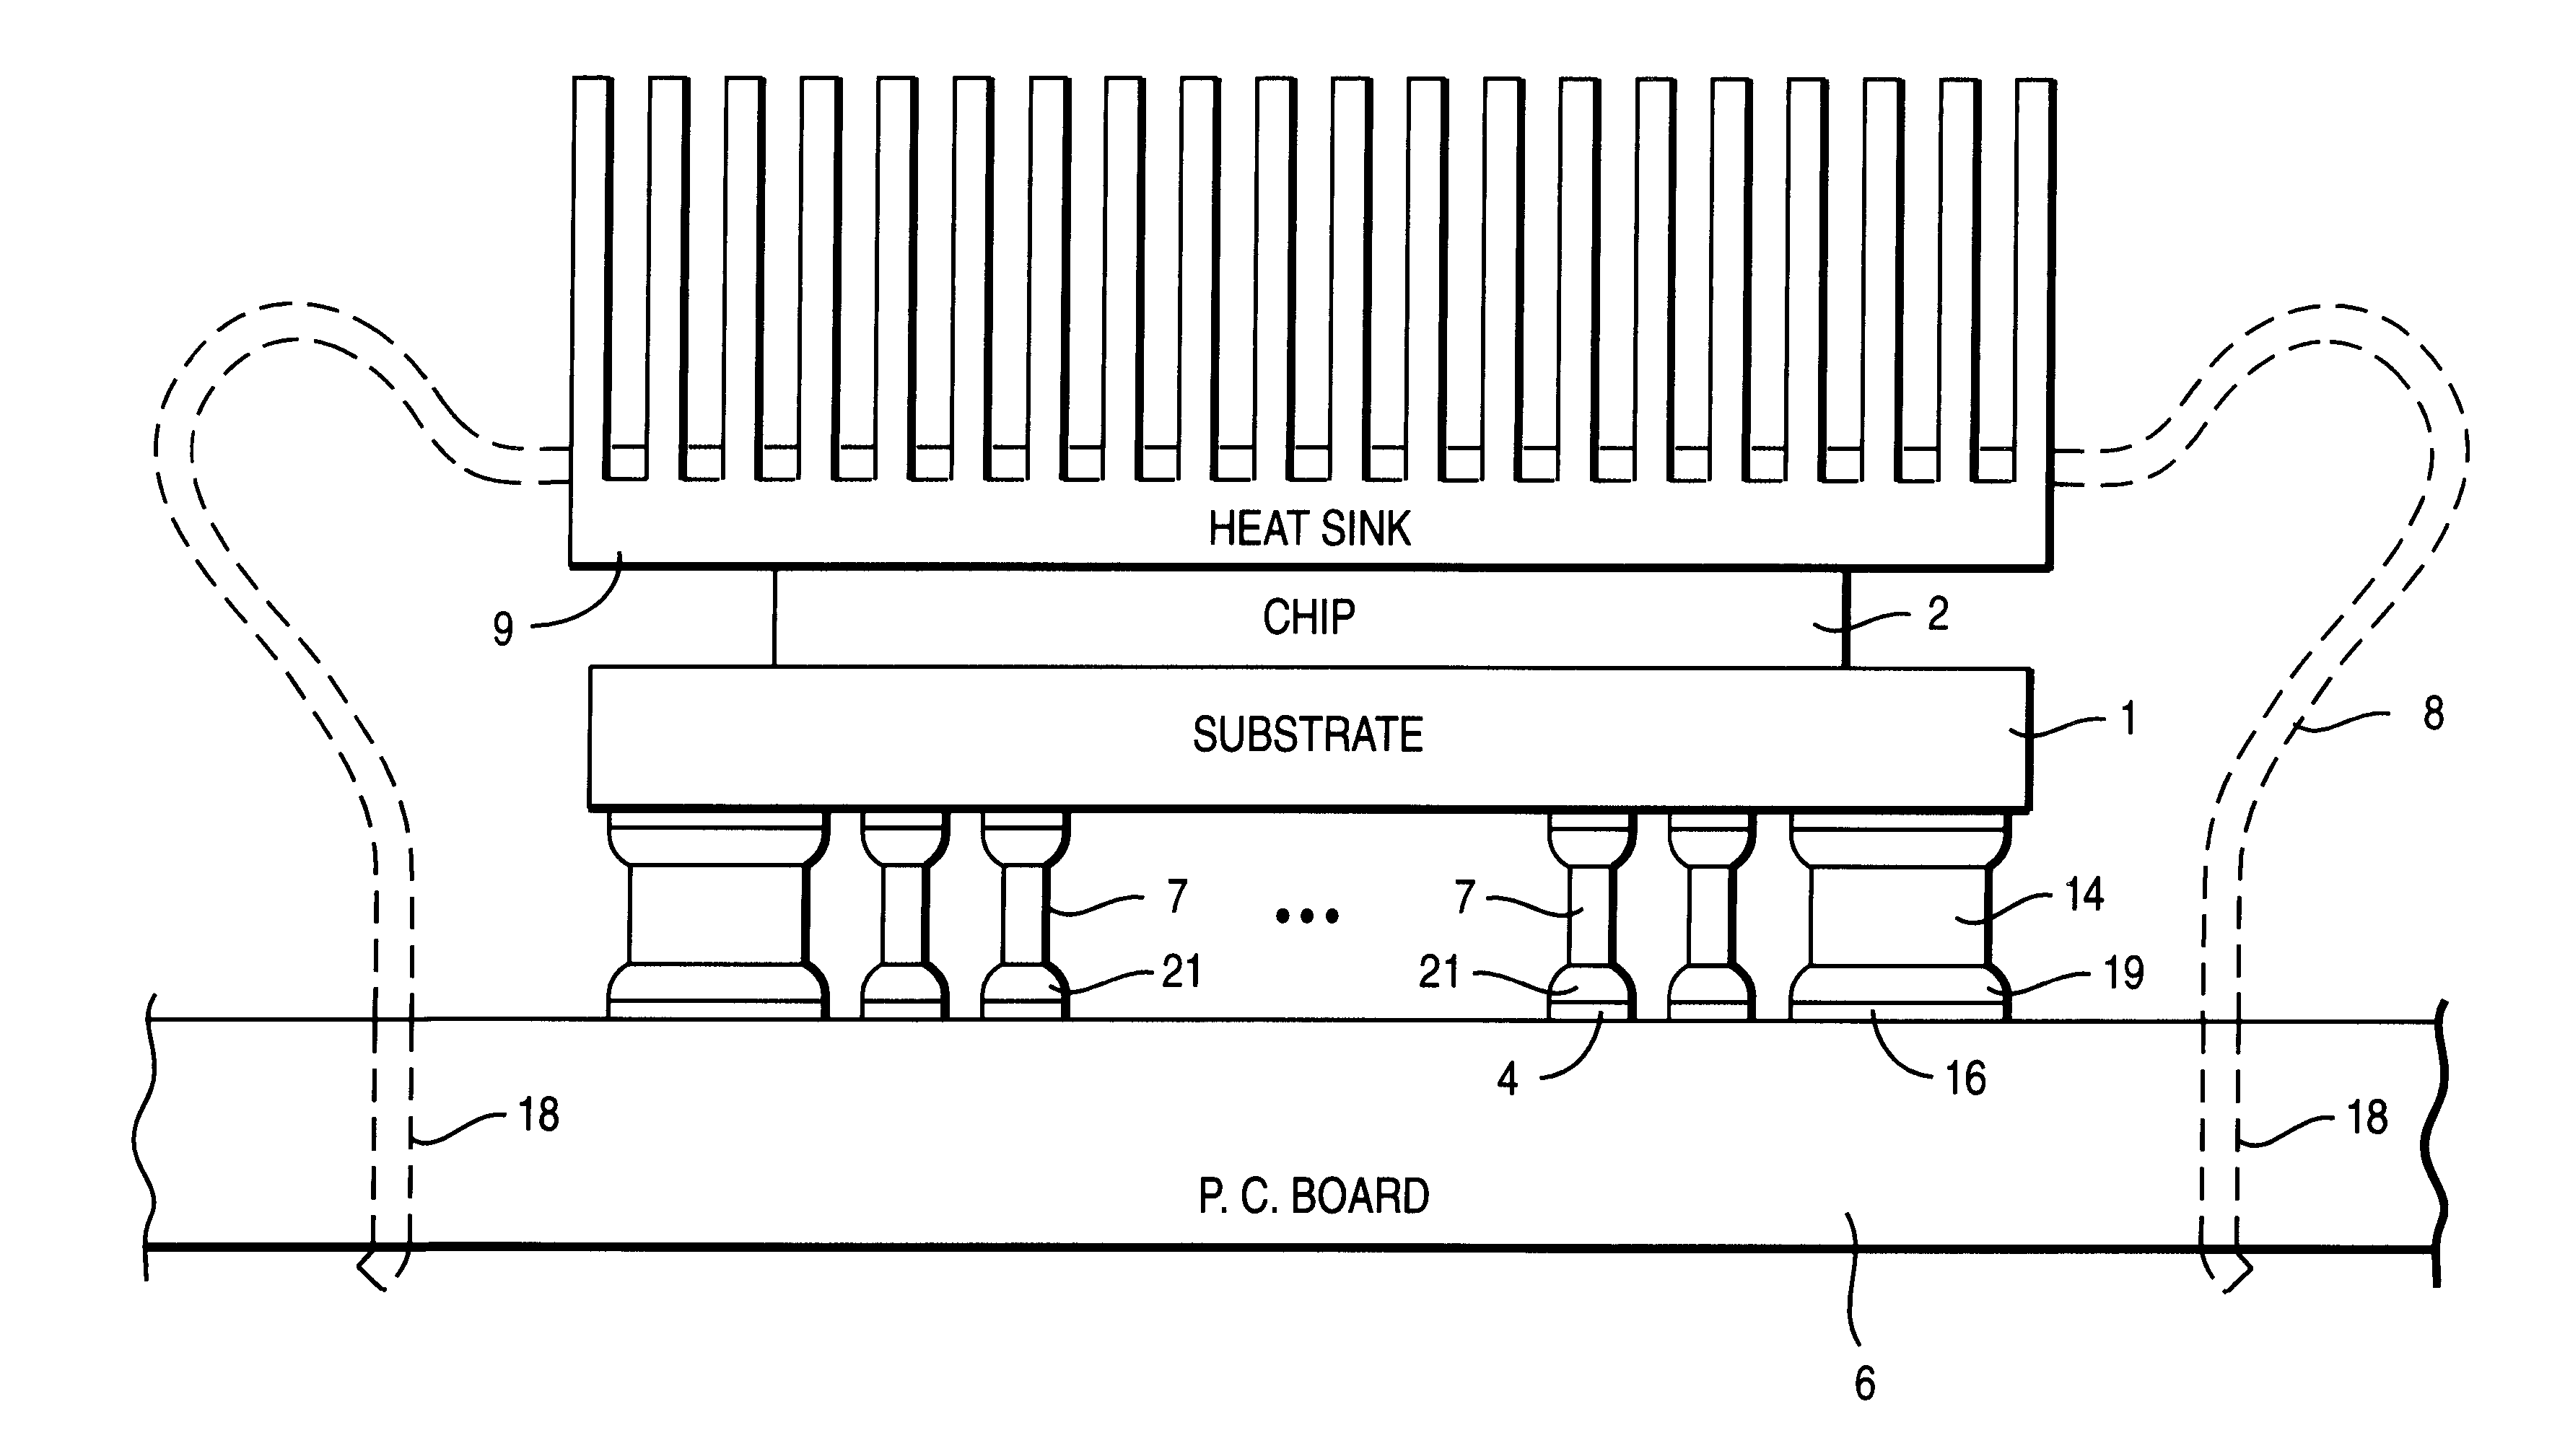 patent us6395991 - column grid array substrate attachment with heat sink stress relief